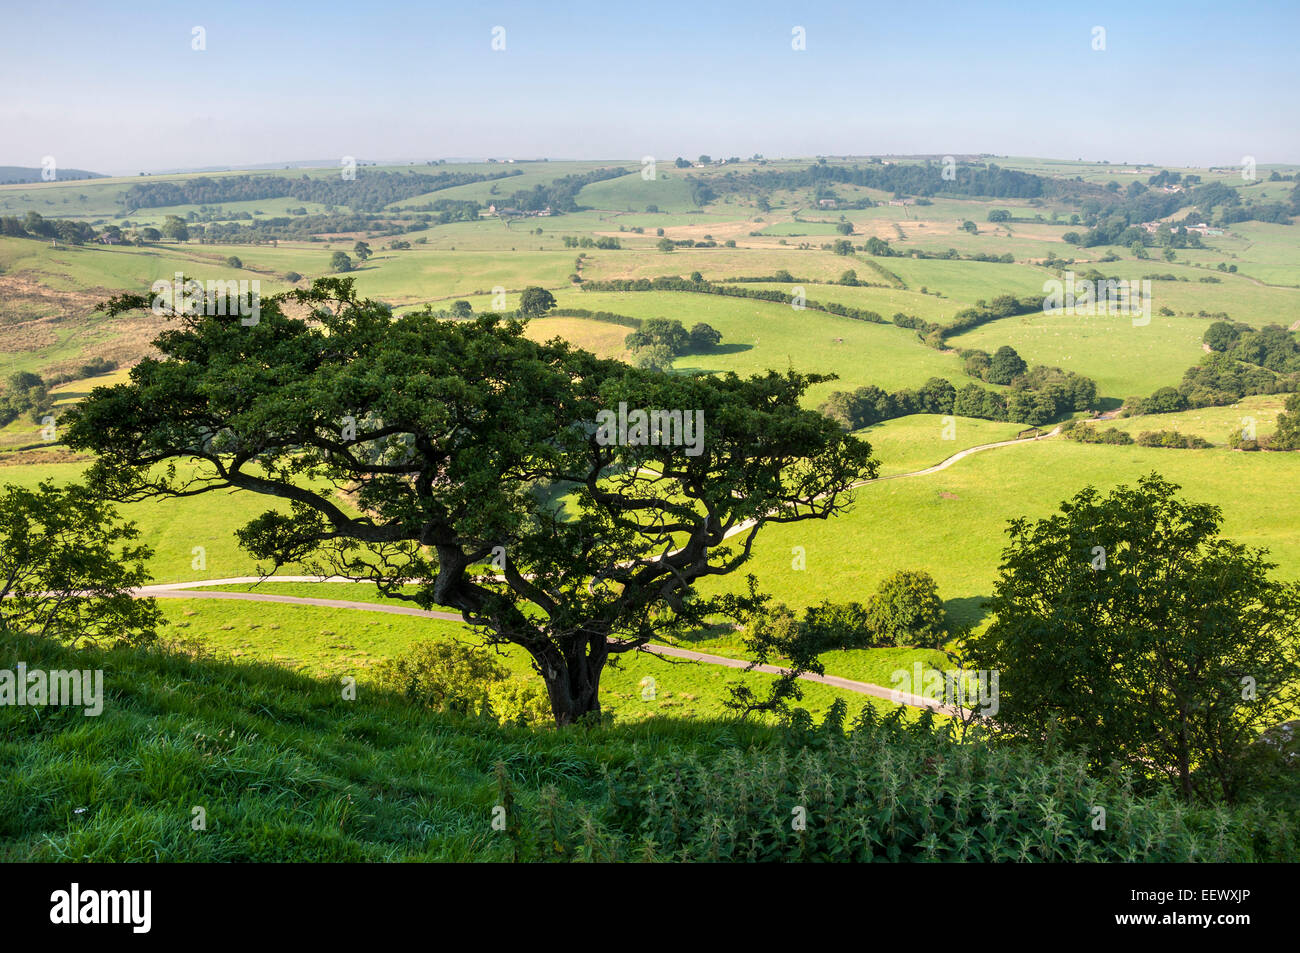 A Hawthorn tree on Parkhouse hill with green summer landscape of fields on the Staffordshire side of the river Dove. - Stock Image